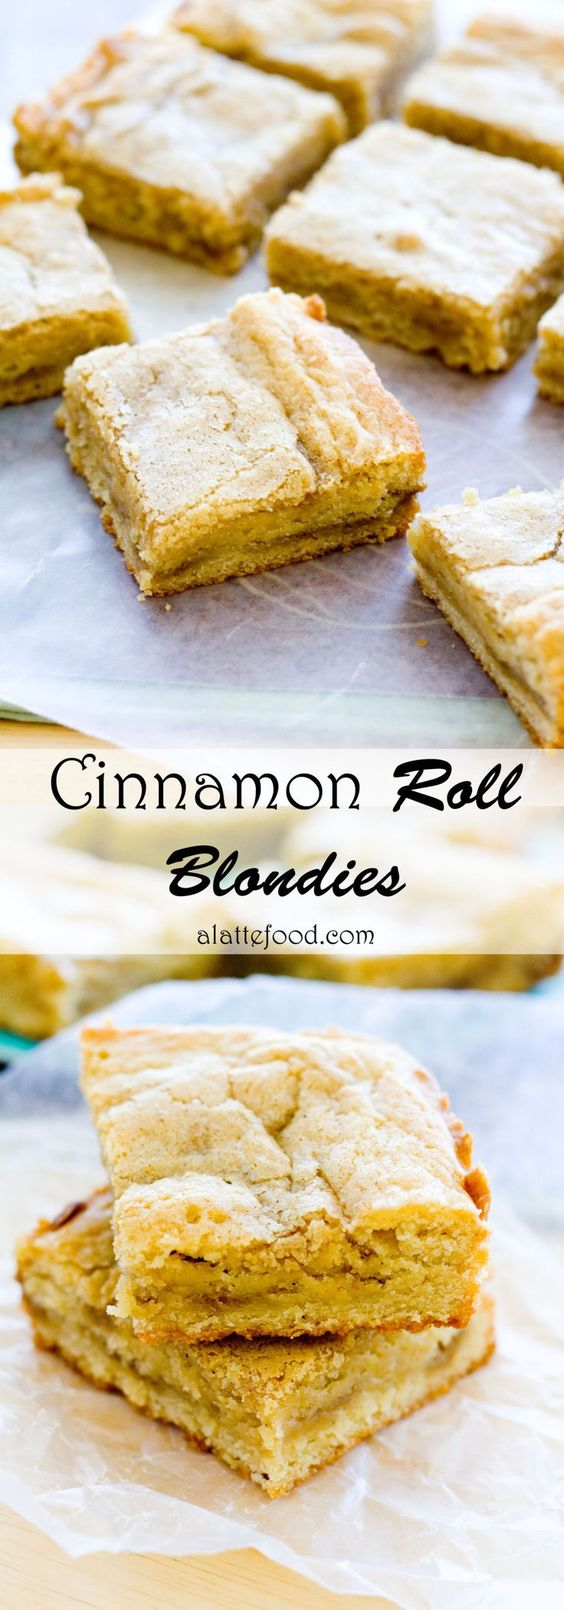 These delicious cinnamon swirled blondies have a layer of gooey cinnamon roll filling to make them amazingly addicting.| www.alattefood.com